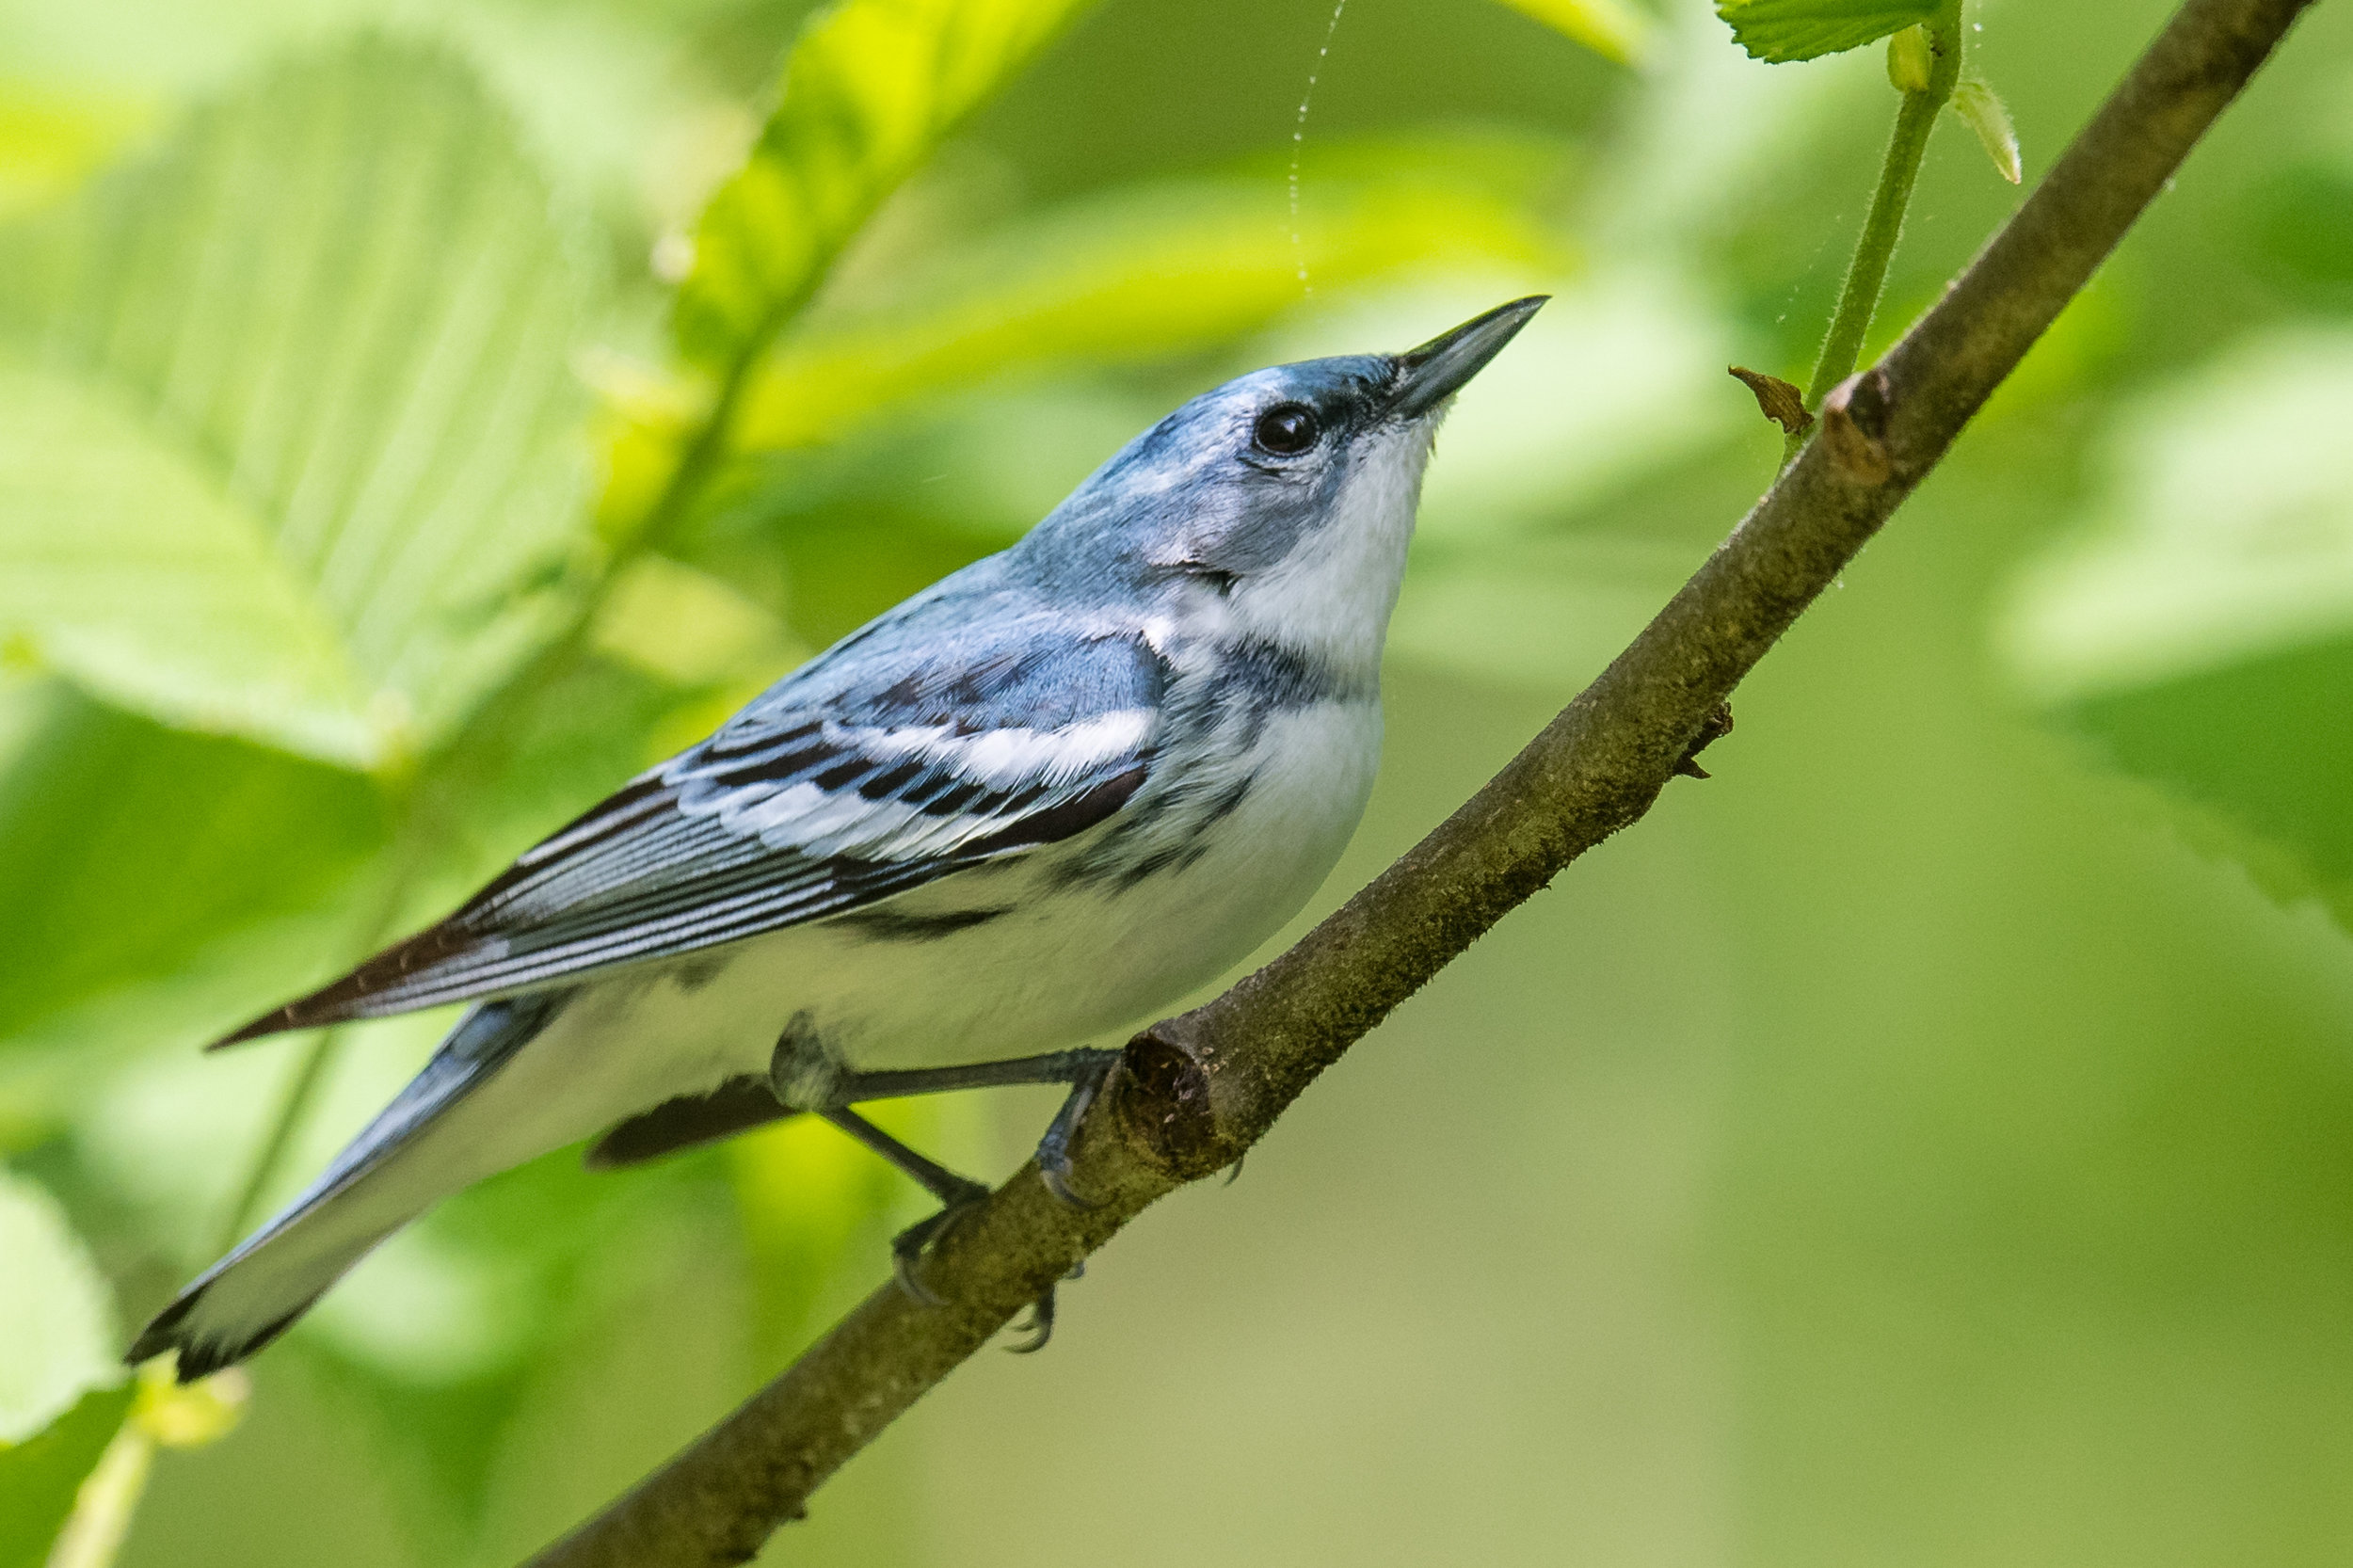 Featured Photo: Cerulean Warbler (Setophaga cerulea), SF Rd 2 to Pond Lick Rd, SCI (OH)  EQ: D850, 500mm f/4 Taken: 5-11-2019 at 11:15  Settings: 500mm (35mm eqv), 1/1000s, f/5, ISO400, 1/3EV Conditions: sunny under canopy